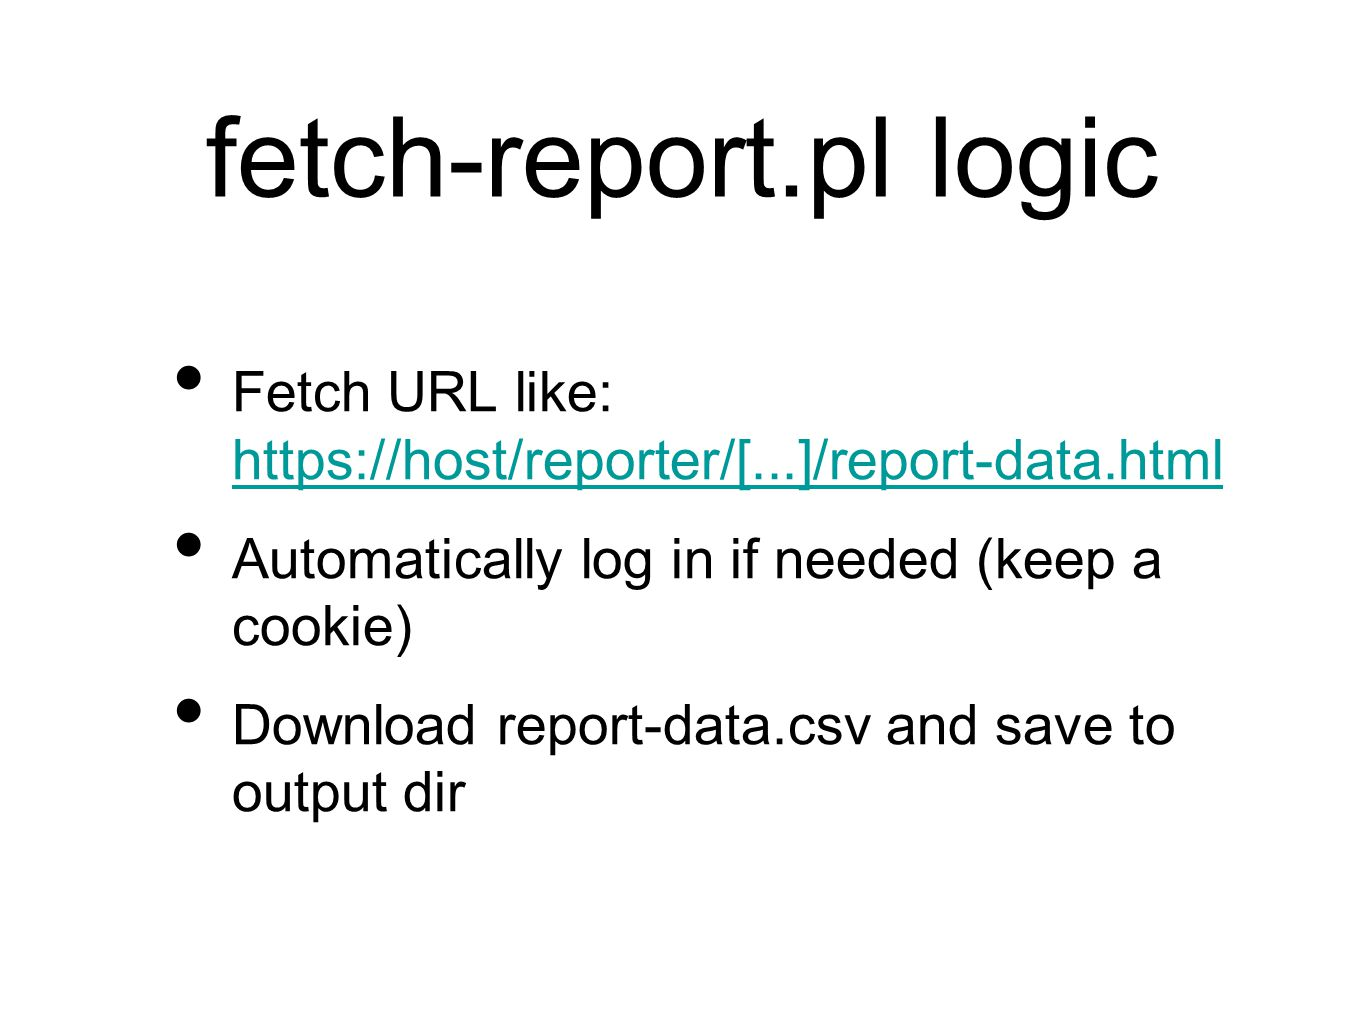 fetch-report.pl logic Fetch URL like: https://host/reporter/[...]/report-data.html https://host/reporter/[...]/report-data.html Automatically log in if needed (keep a cookie) Download report-data.csv and save to output dir